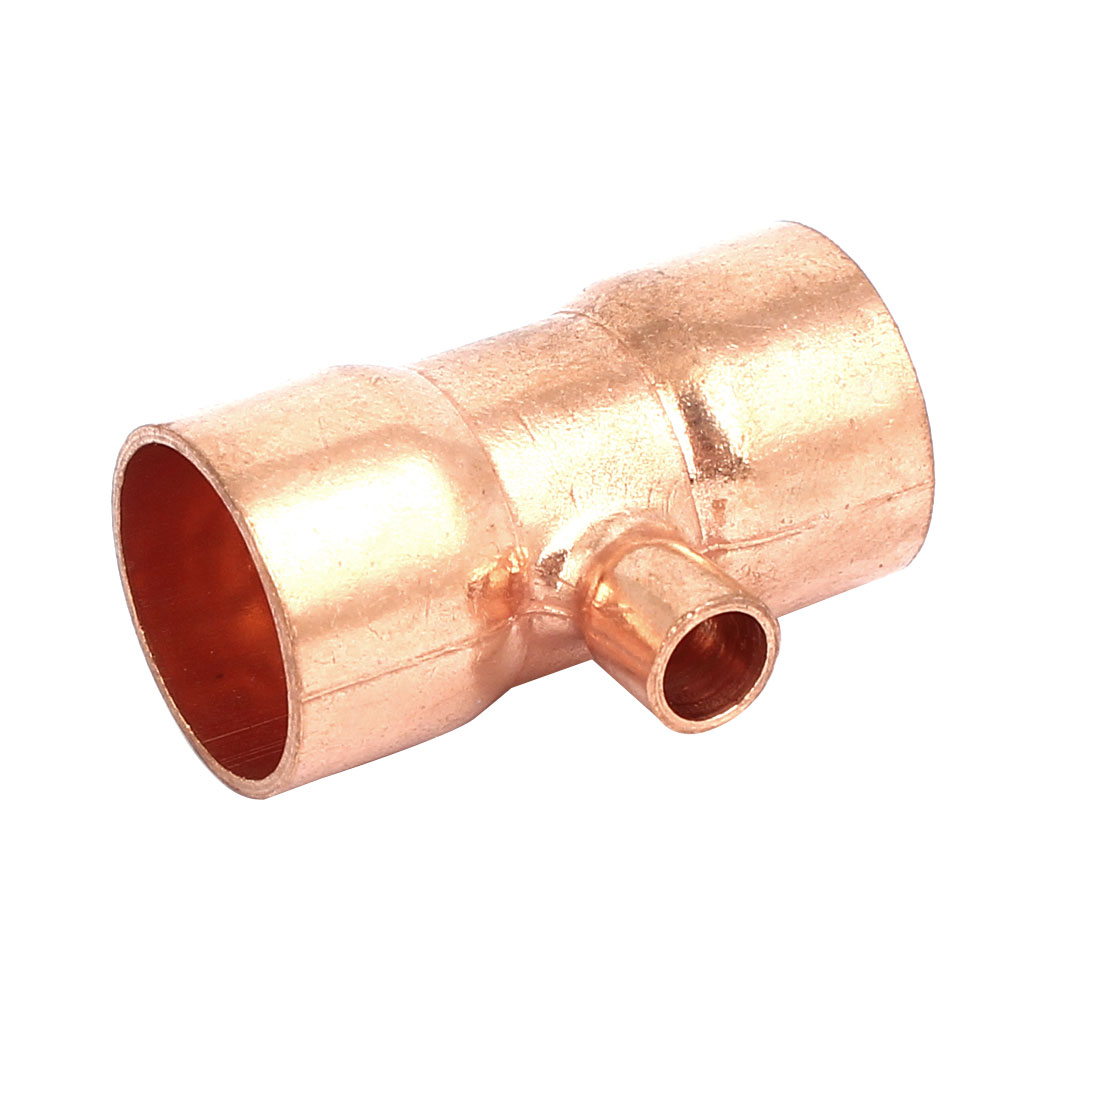 19mmx6.35mm Copper Tee Reducing Fitting Air Conditioner Plumbing Accessory